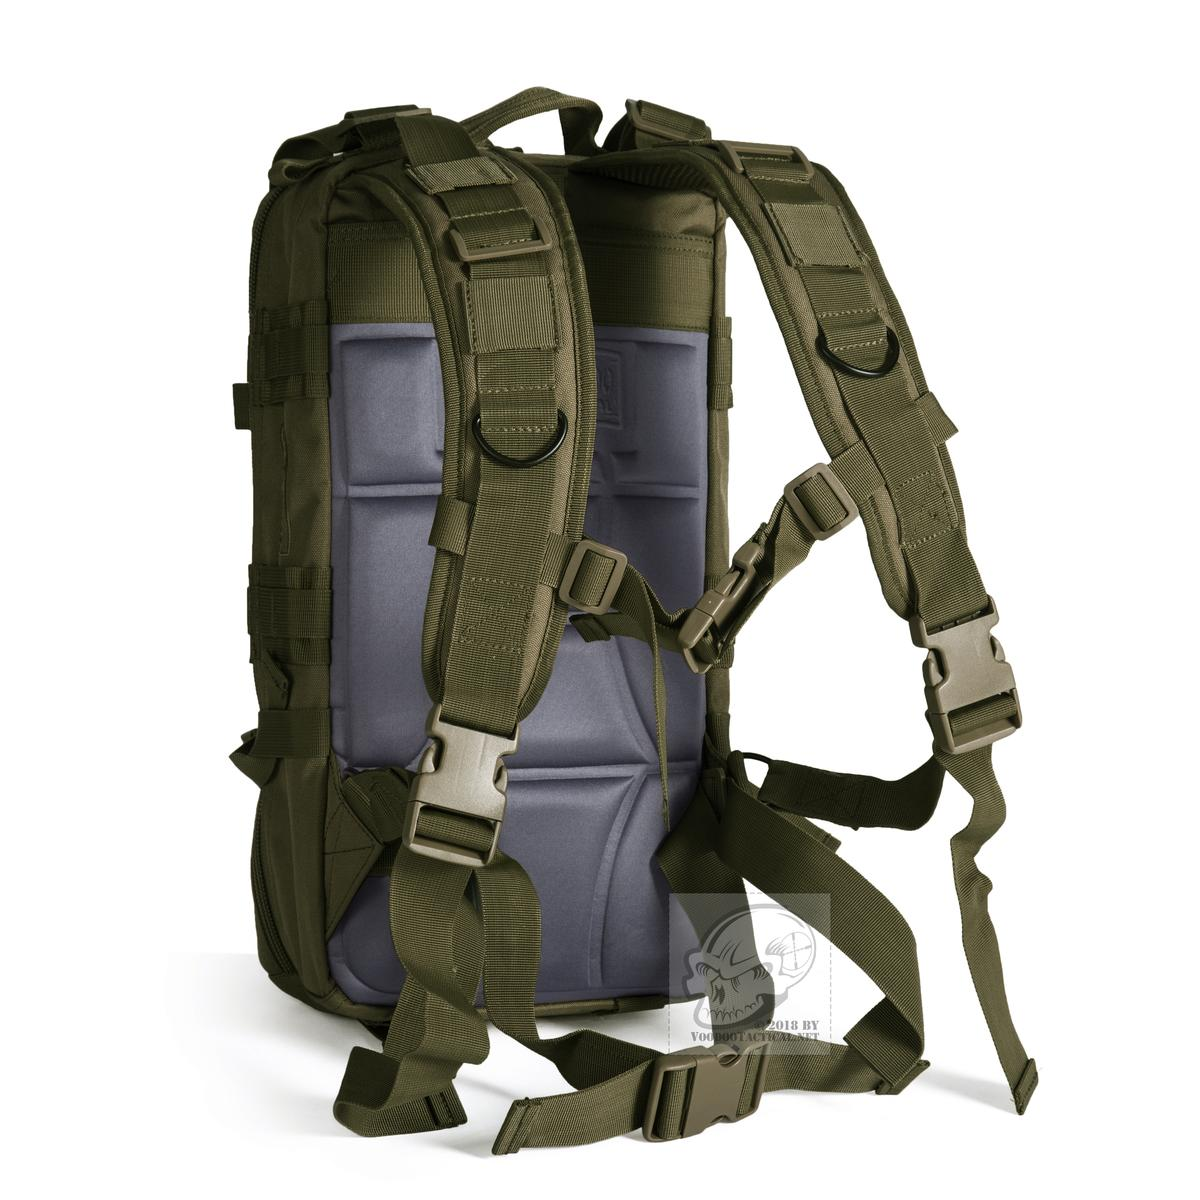 08bb56f33d15 Details about Voodoo Tactical 15-7436 Level II Assault Pack, MOLLE Backpack